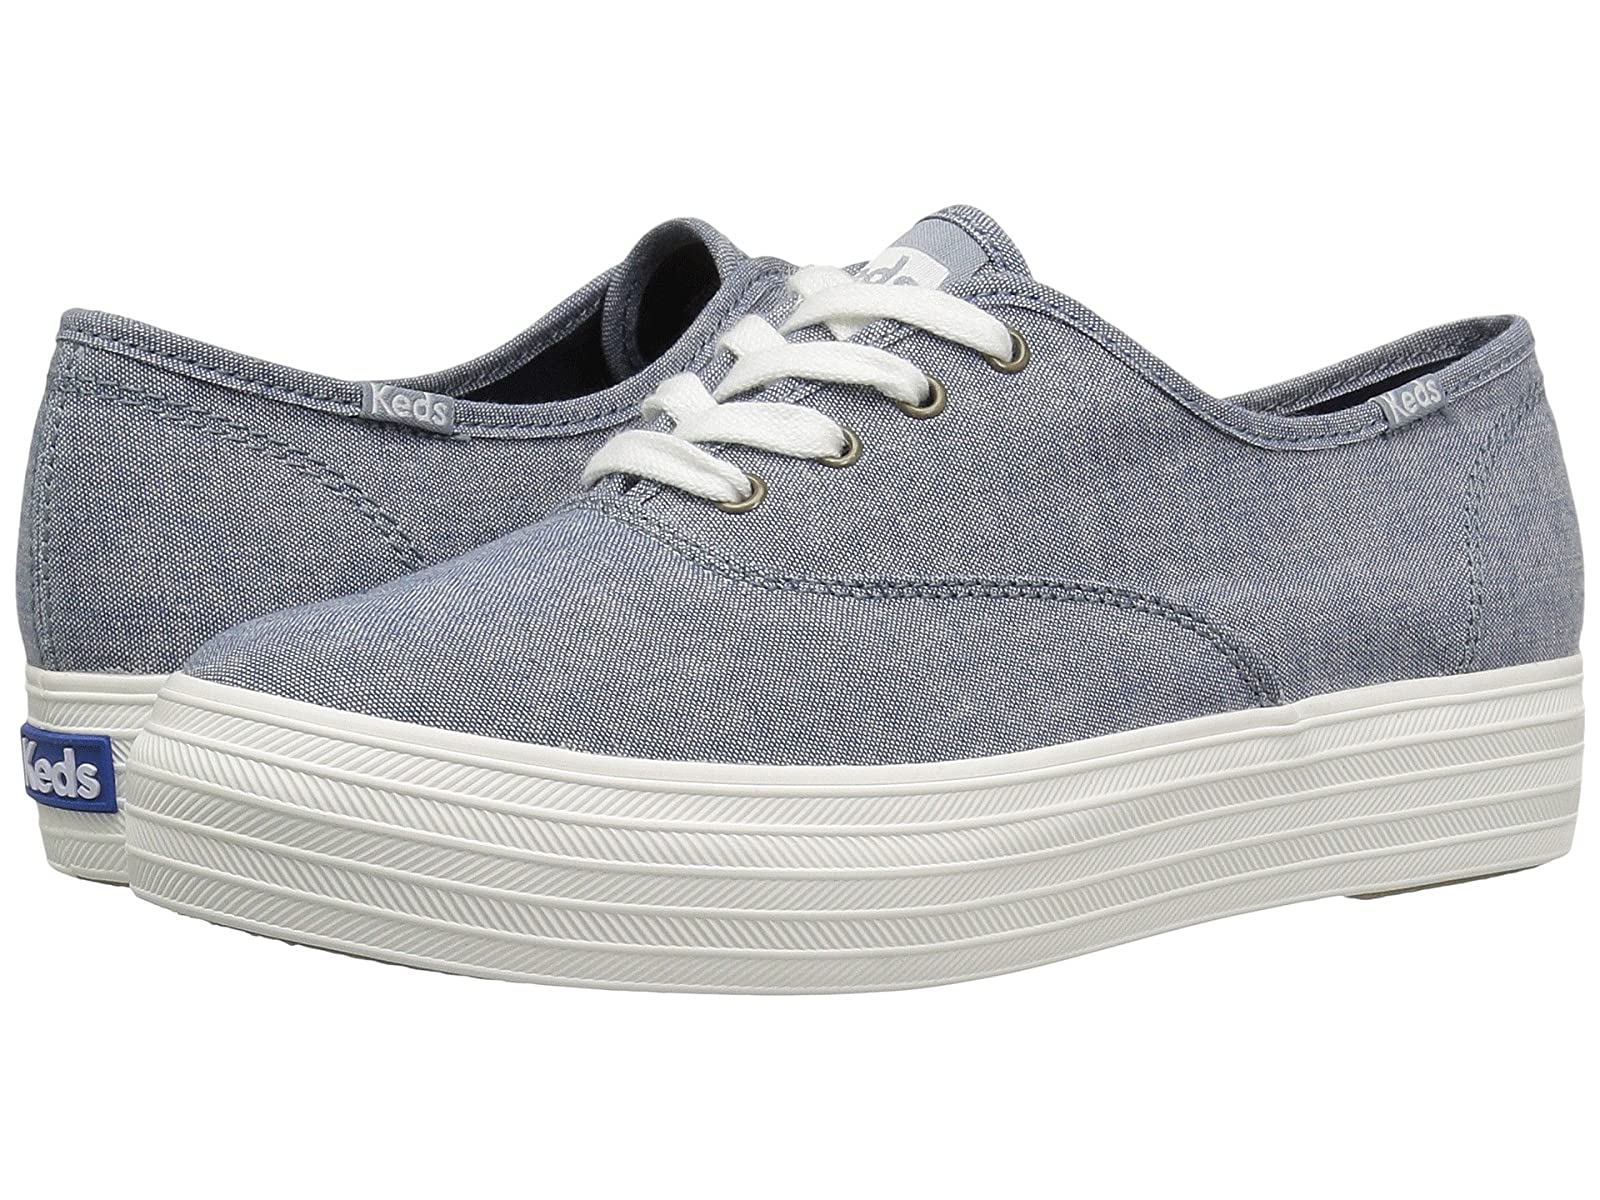 Keds Triple CanvasCheap and distinctive eye-catching shoes